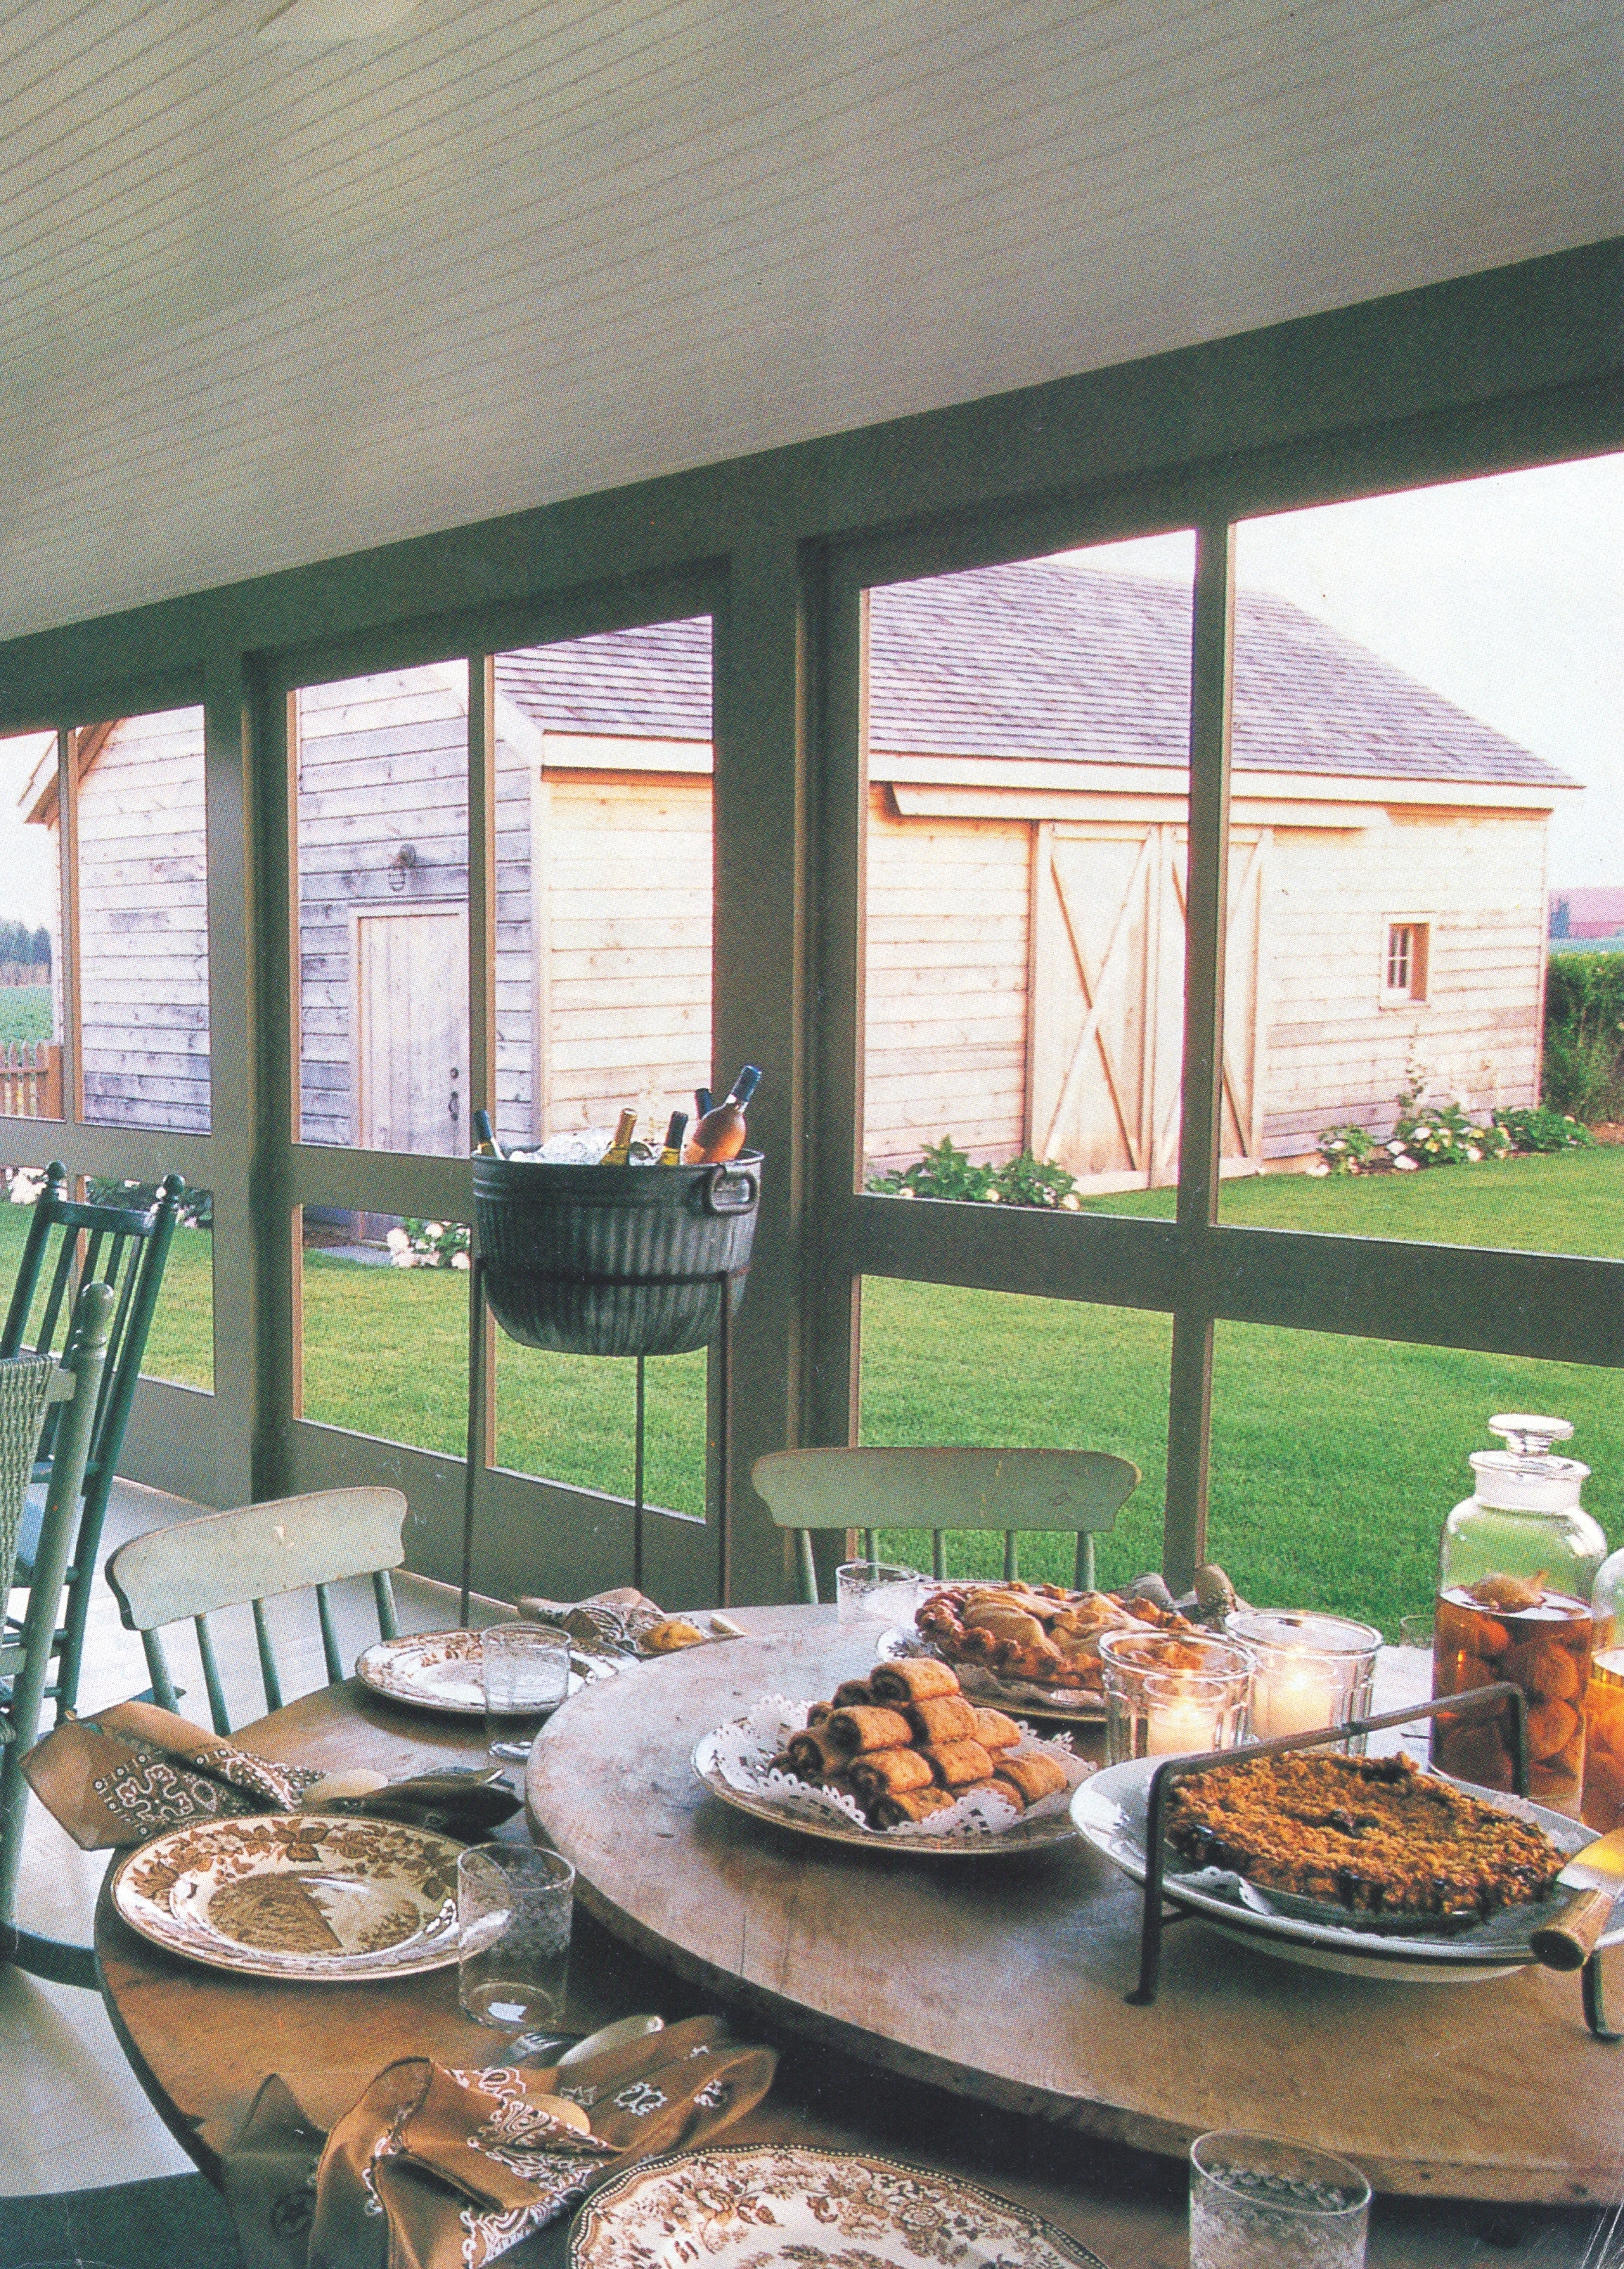 a place to dine in the screened-in porch